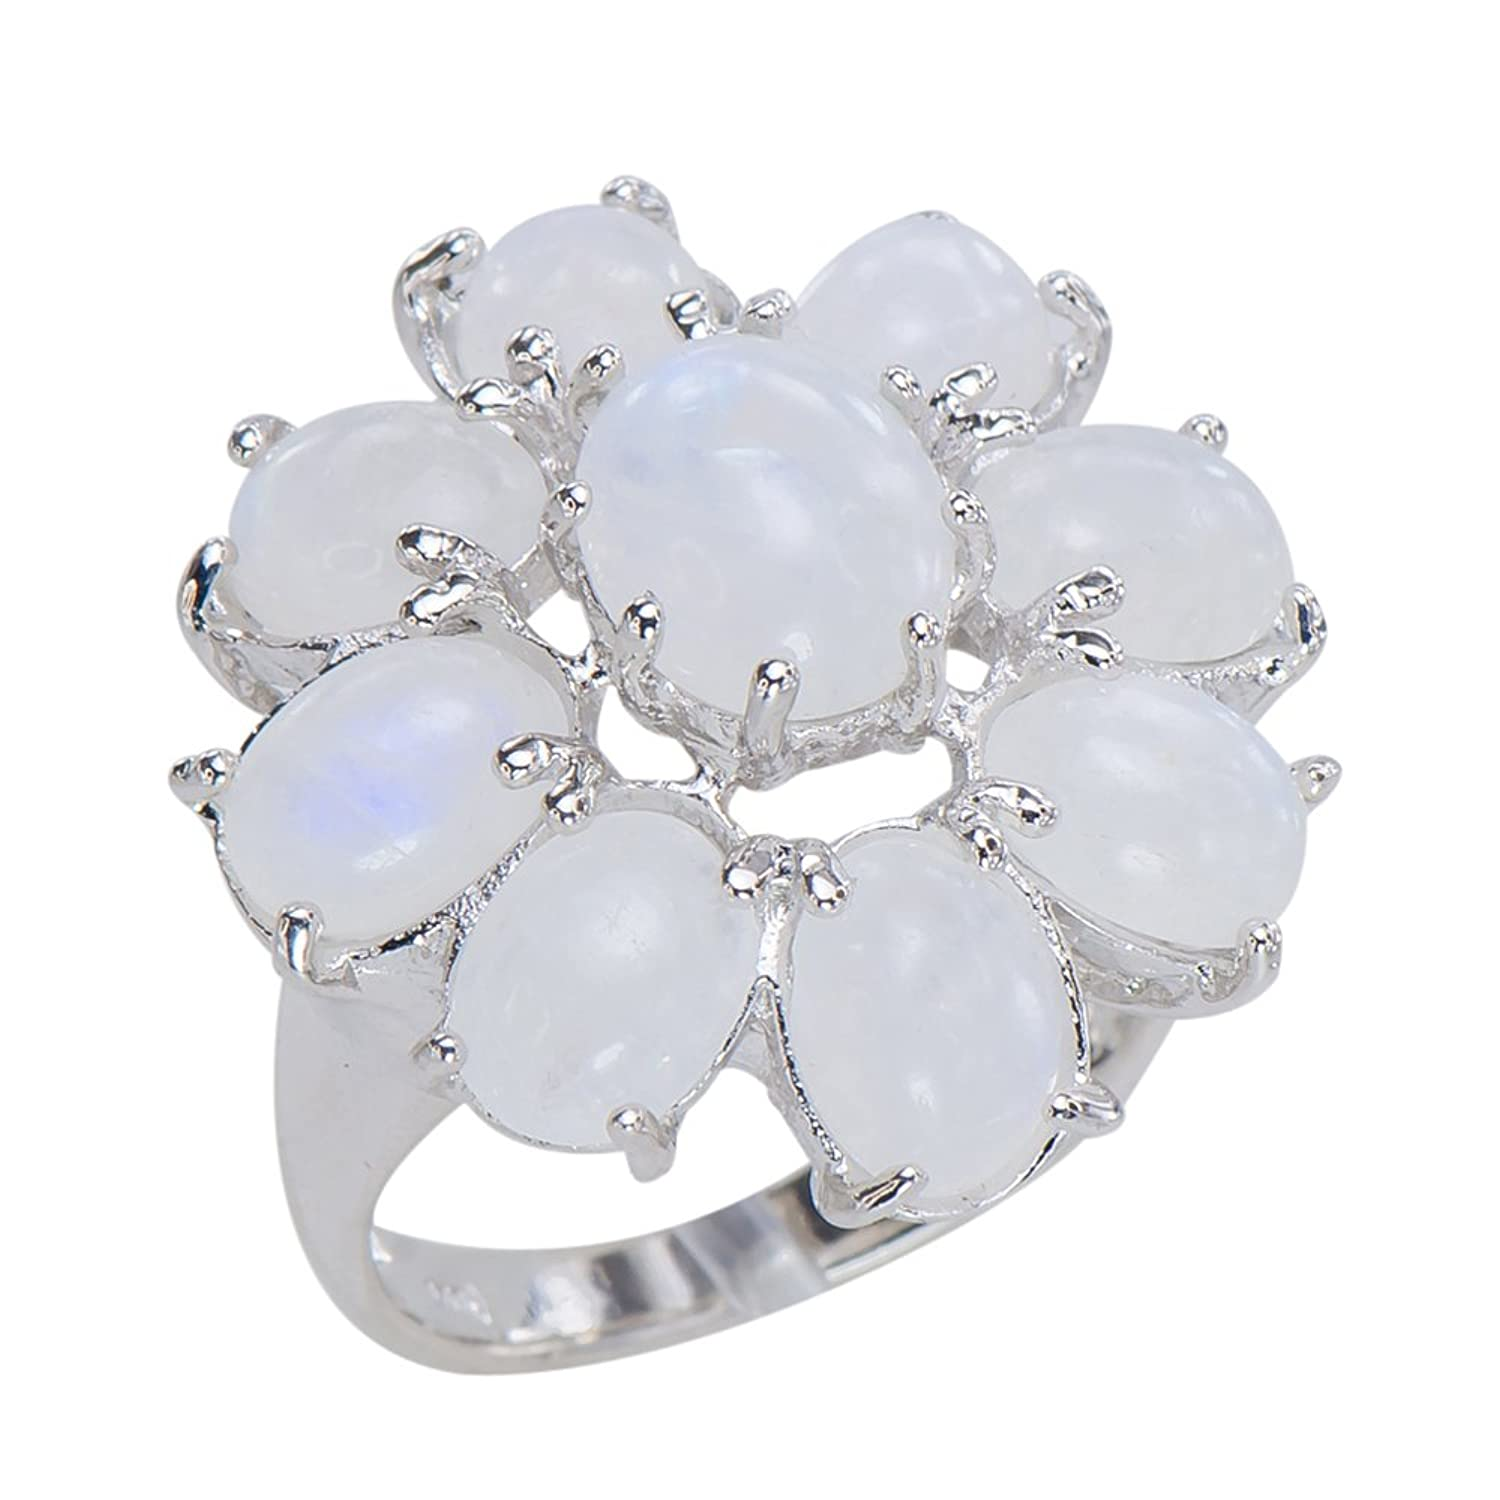 Gorgeous Women's Moonstone Floret Flower 925 Sterling Silver Statement Ring